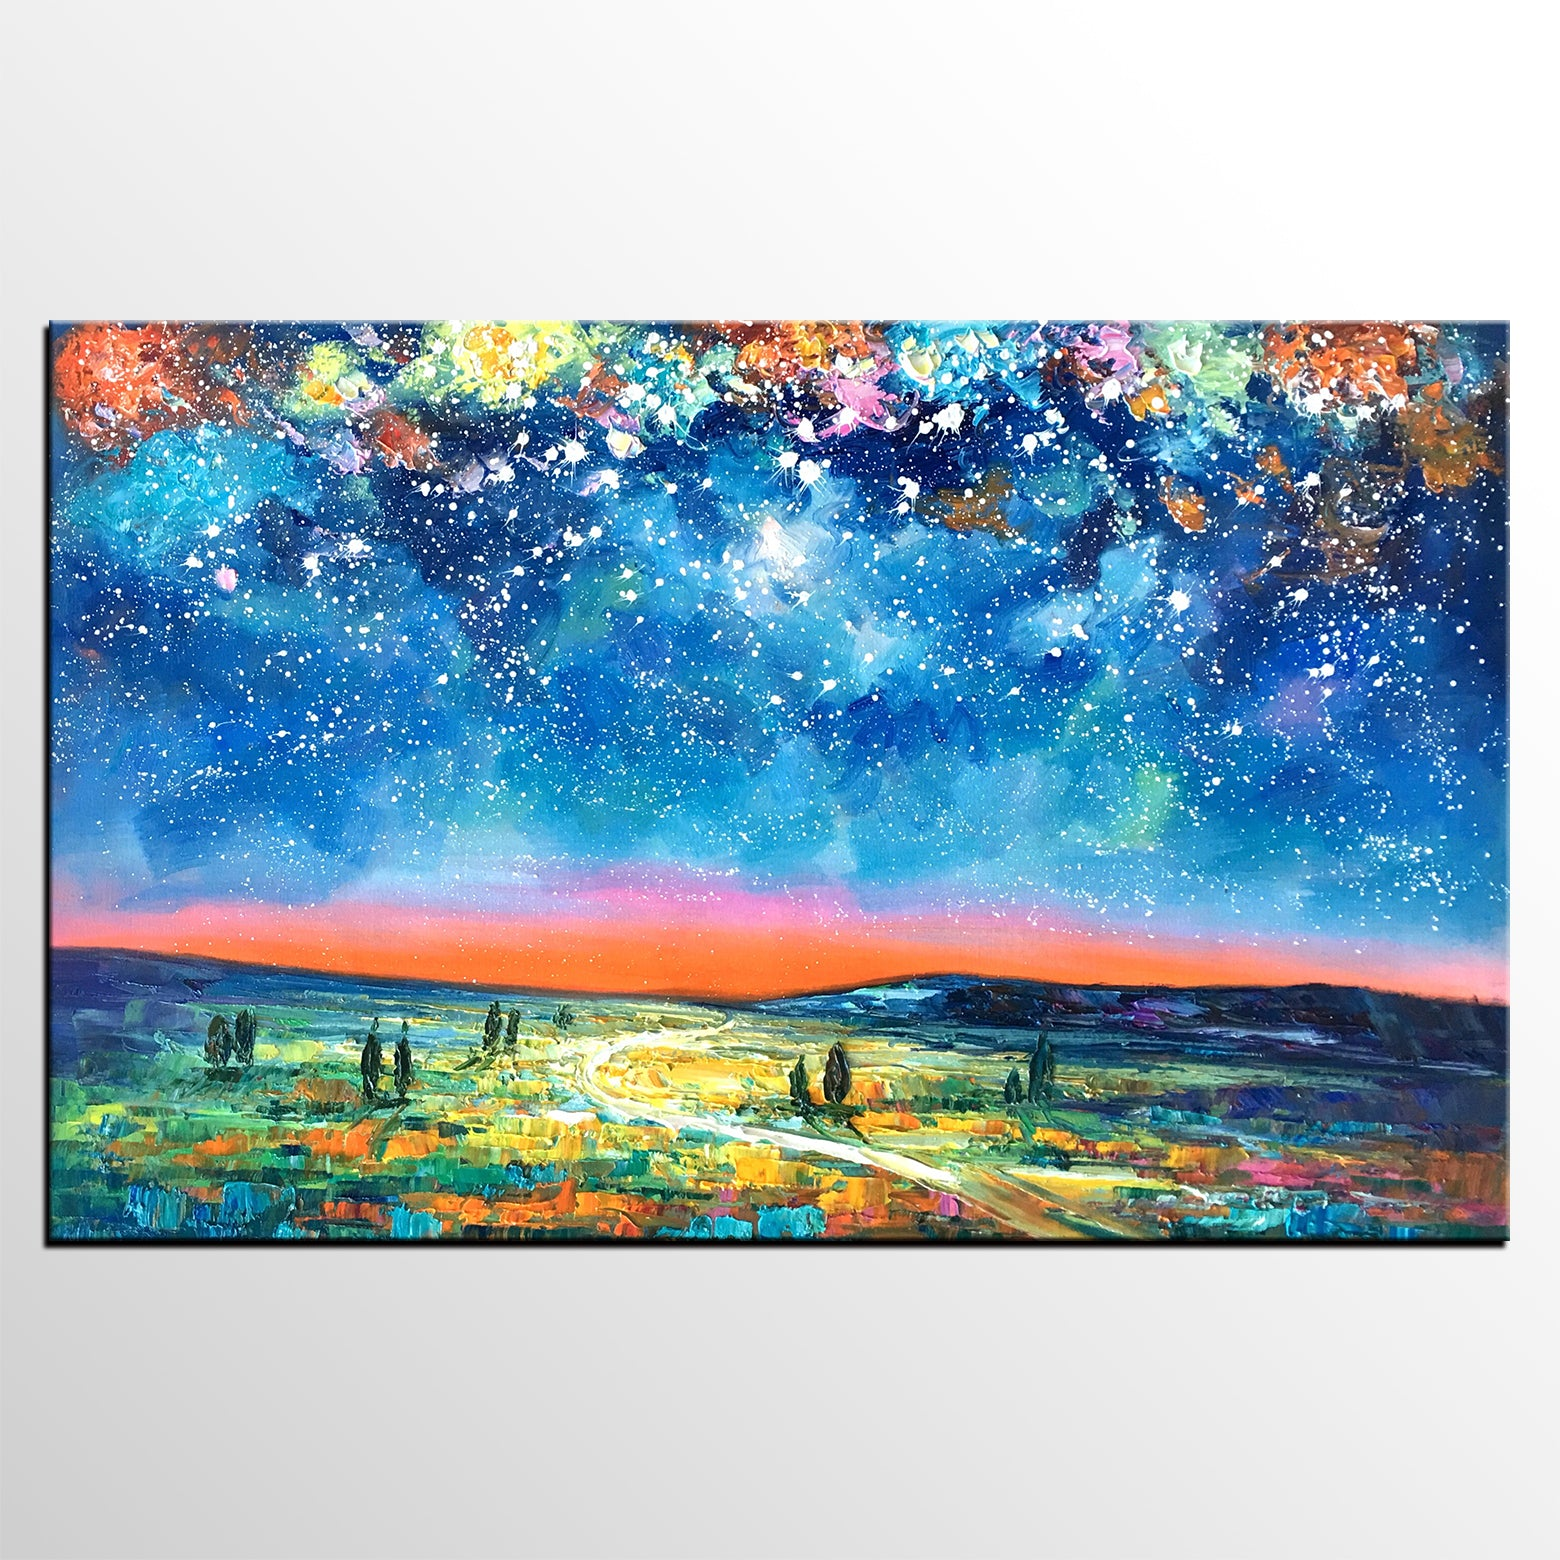 Abstract Landscape Painting, Starry Night Sky Painting, Custom Artwork, Heavy Texture Oil Painting - artworkcanvas